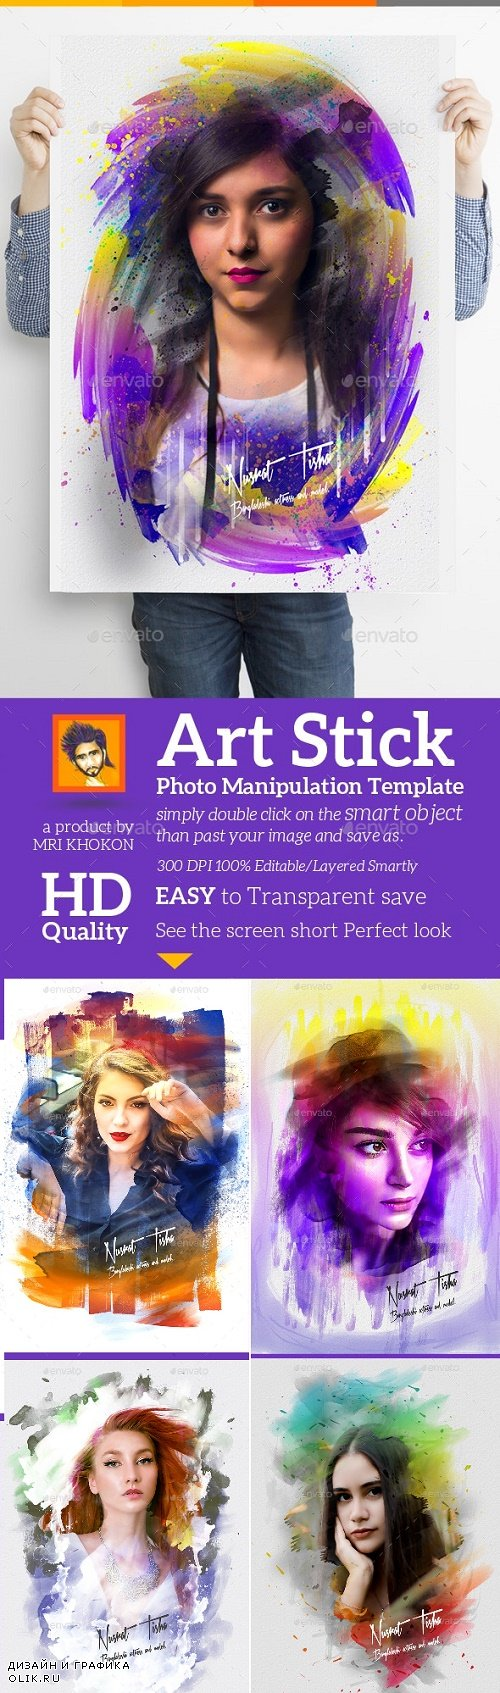 Art Stick Photo Template 24281919